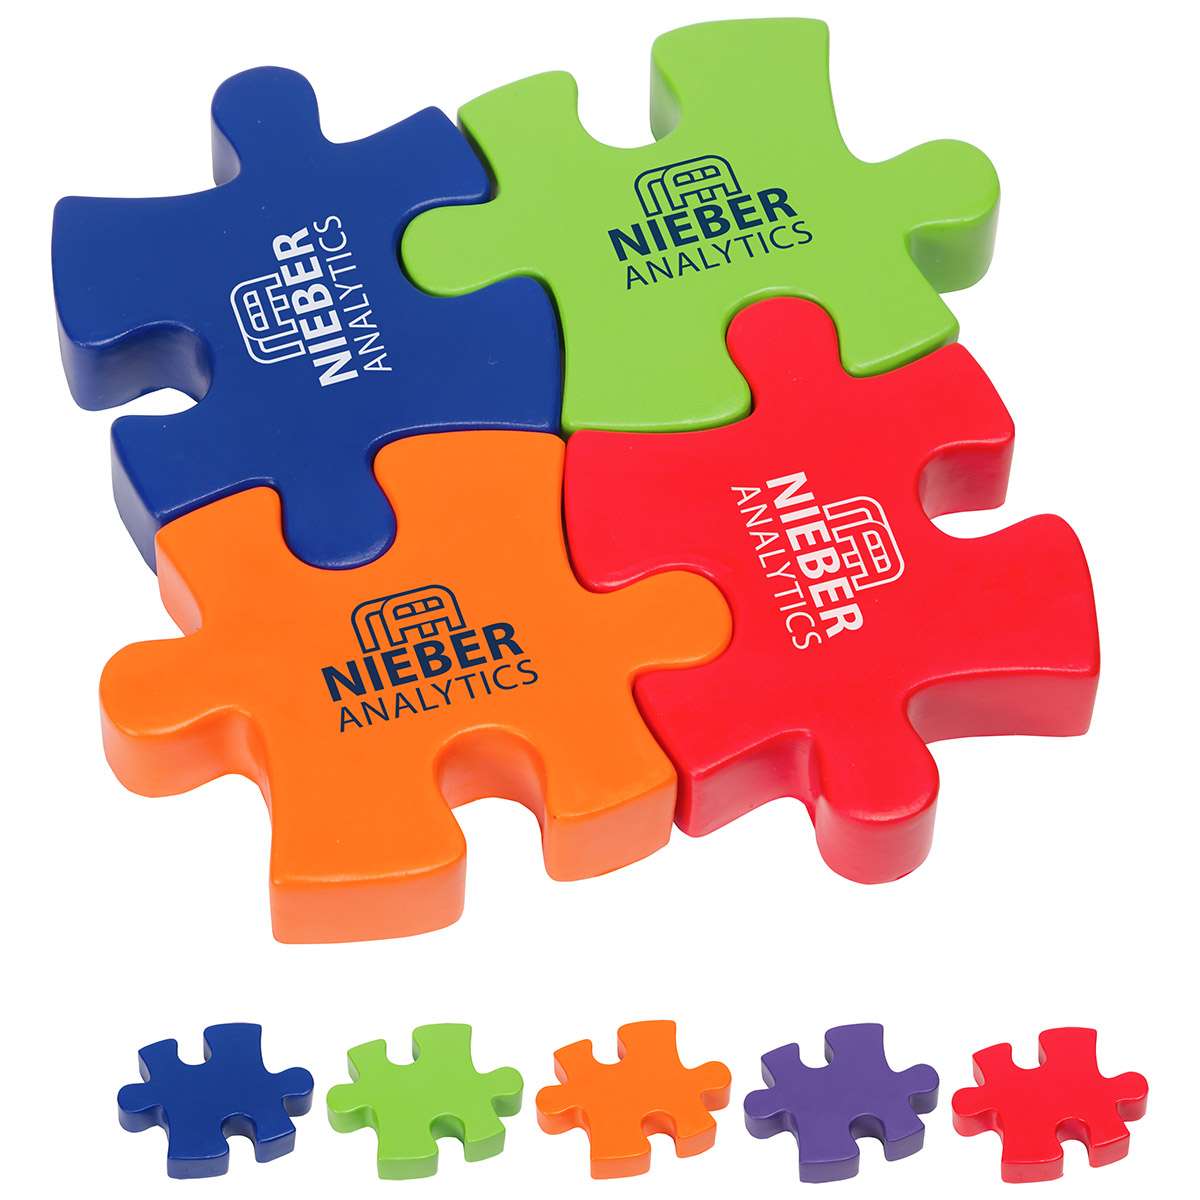 4-Piece Connecting Puzzle Set, LGS-4P17 - 1 Colour Imprint